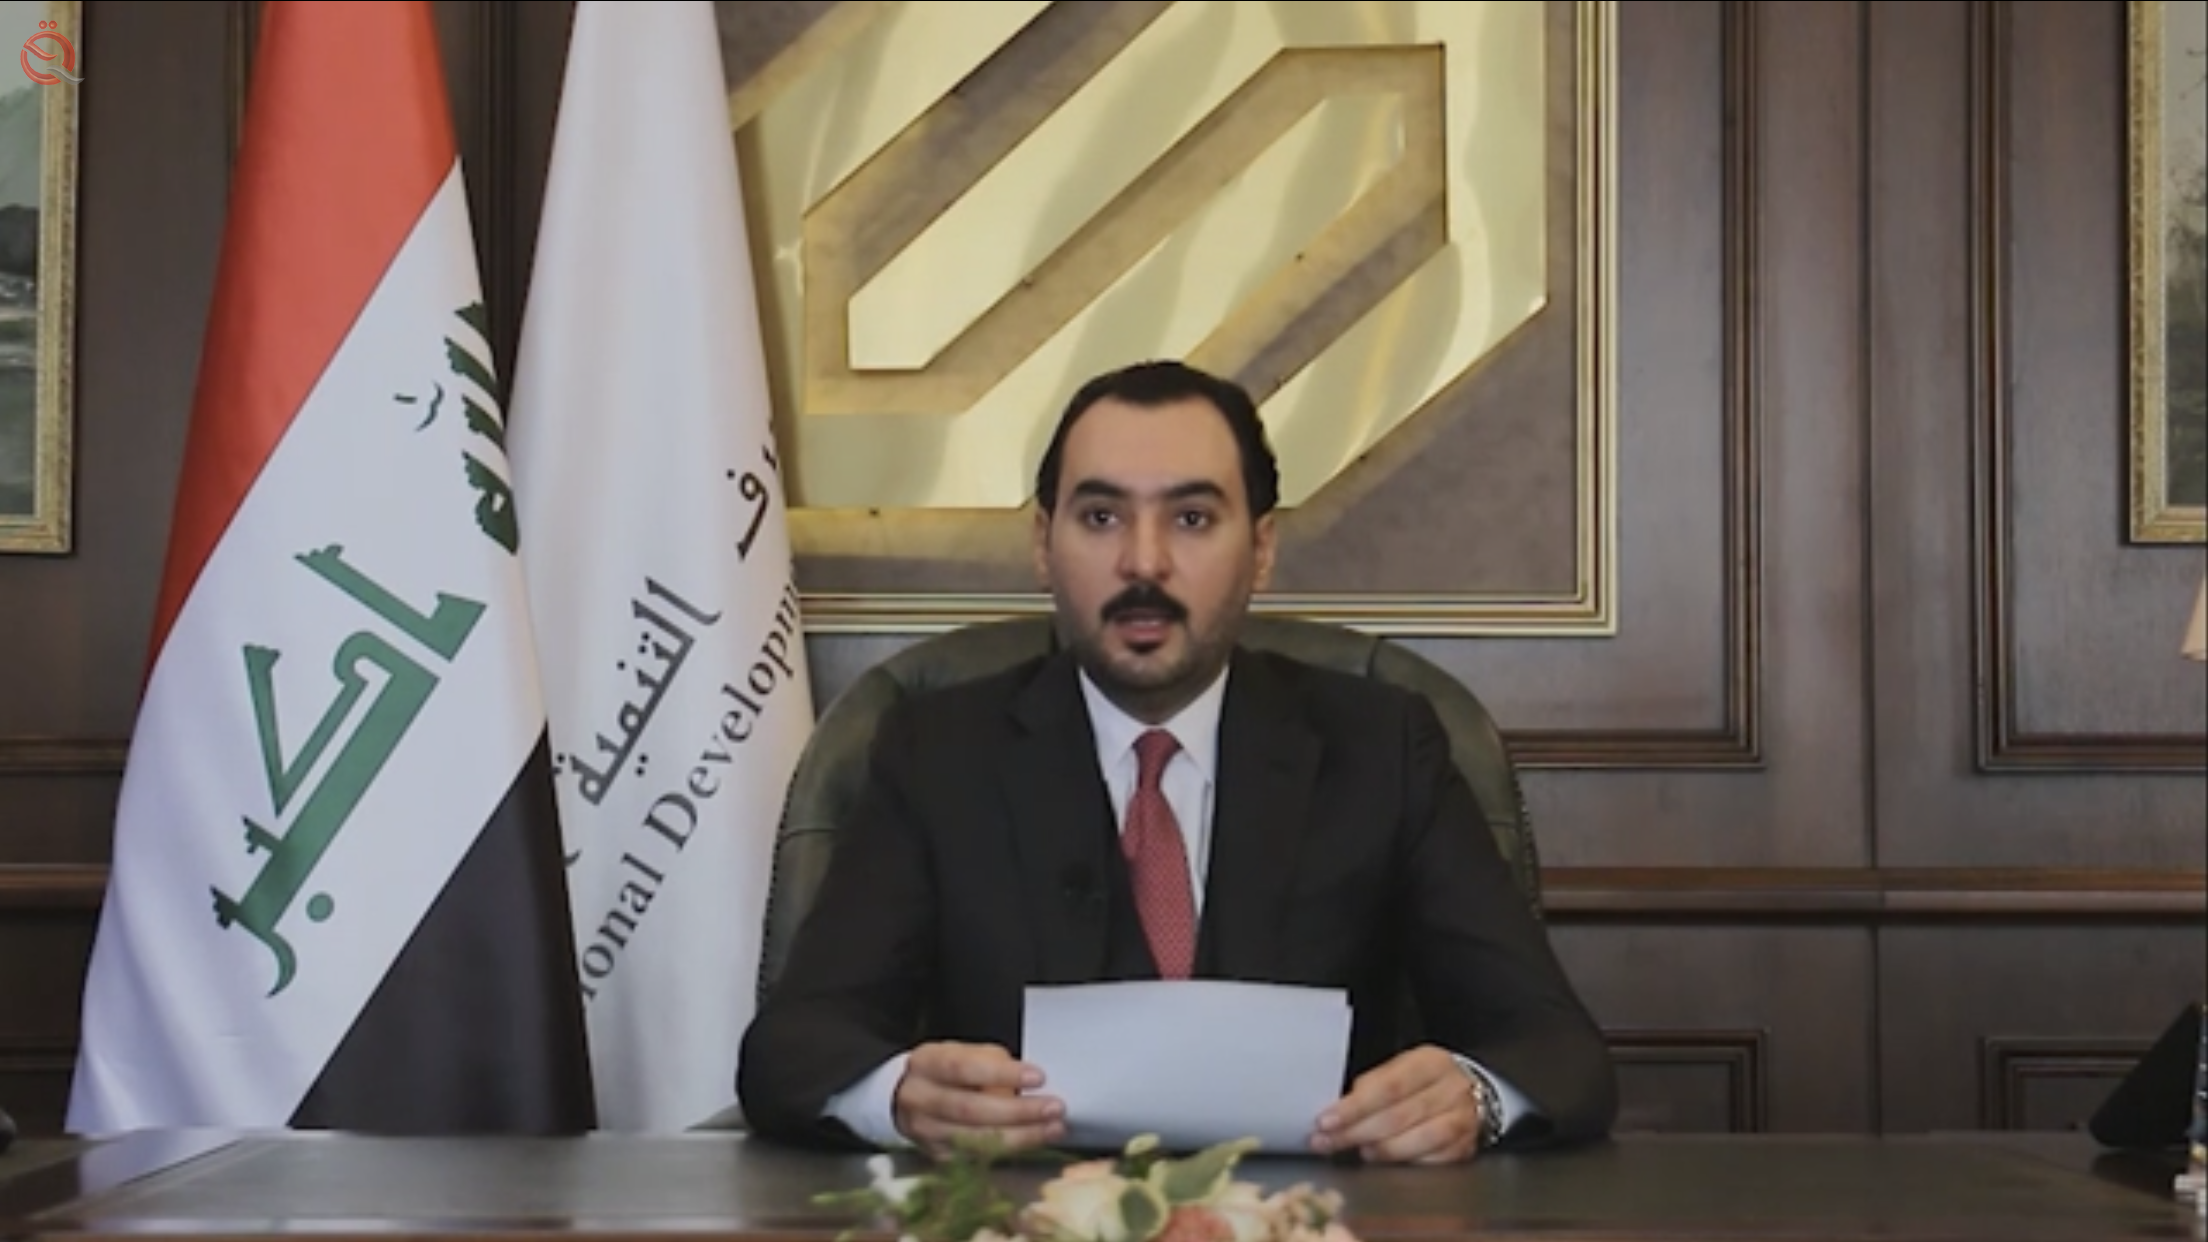 Member of the Board of Directors of the Union of Arab Banks, Ziad Khalaf, confirms the high liquidity of the International Development Bank 22846